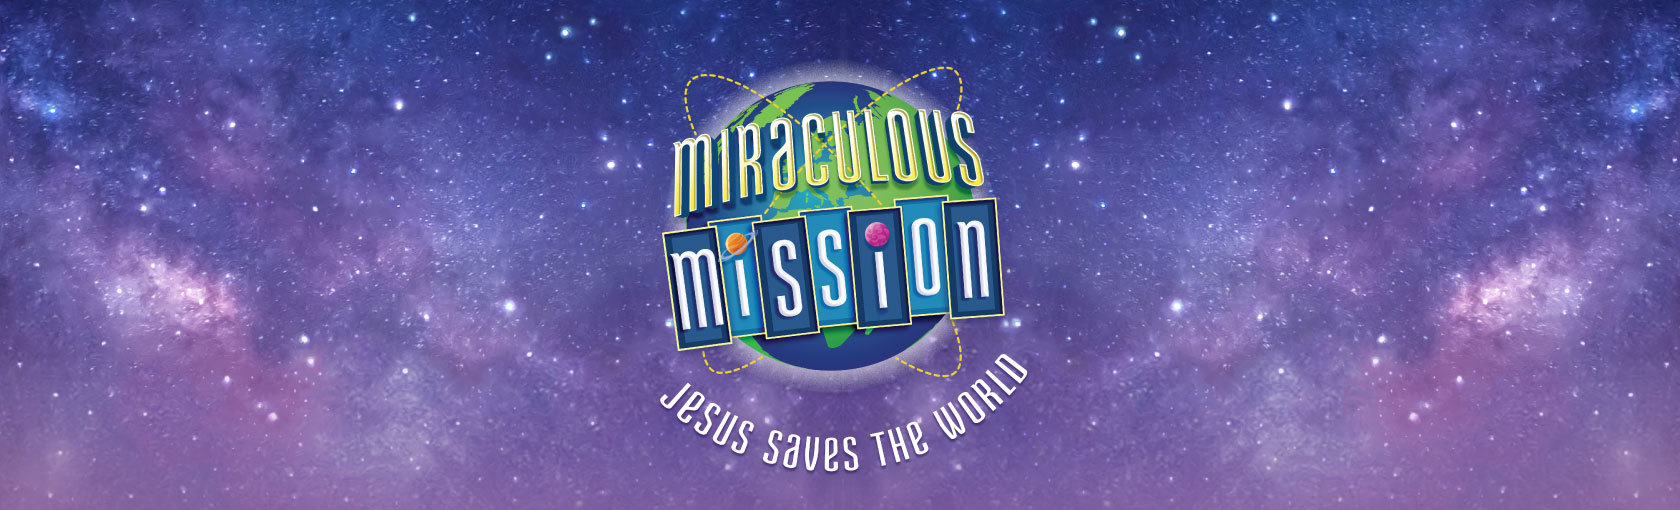 Vbs miraculous mission clipart graphic royalty free MyVBS | Grace Church graphic royalty free